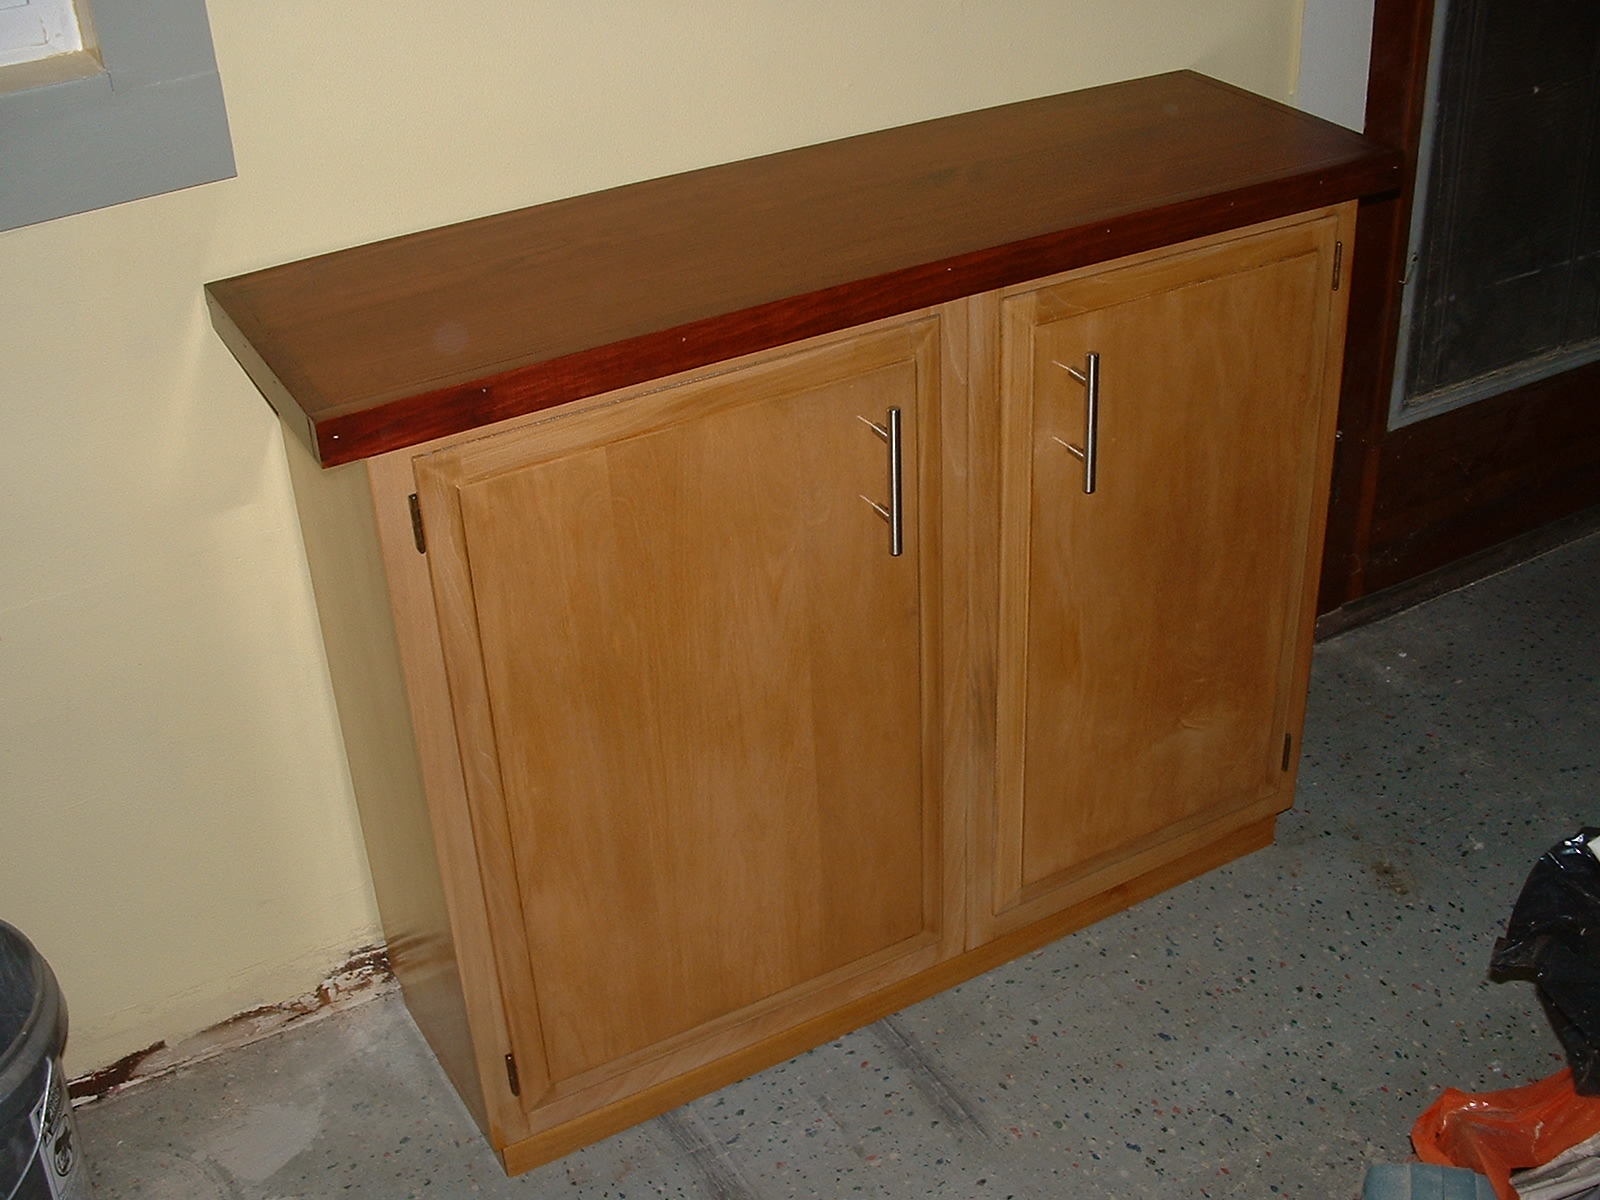 Picture of Construct a Sideboard From Kitchen Wall Cabinets